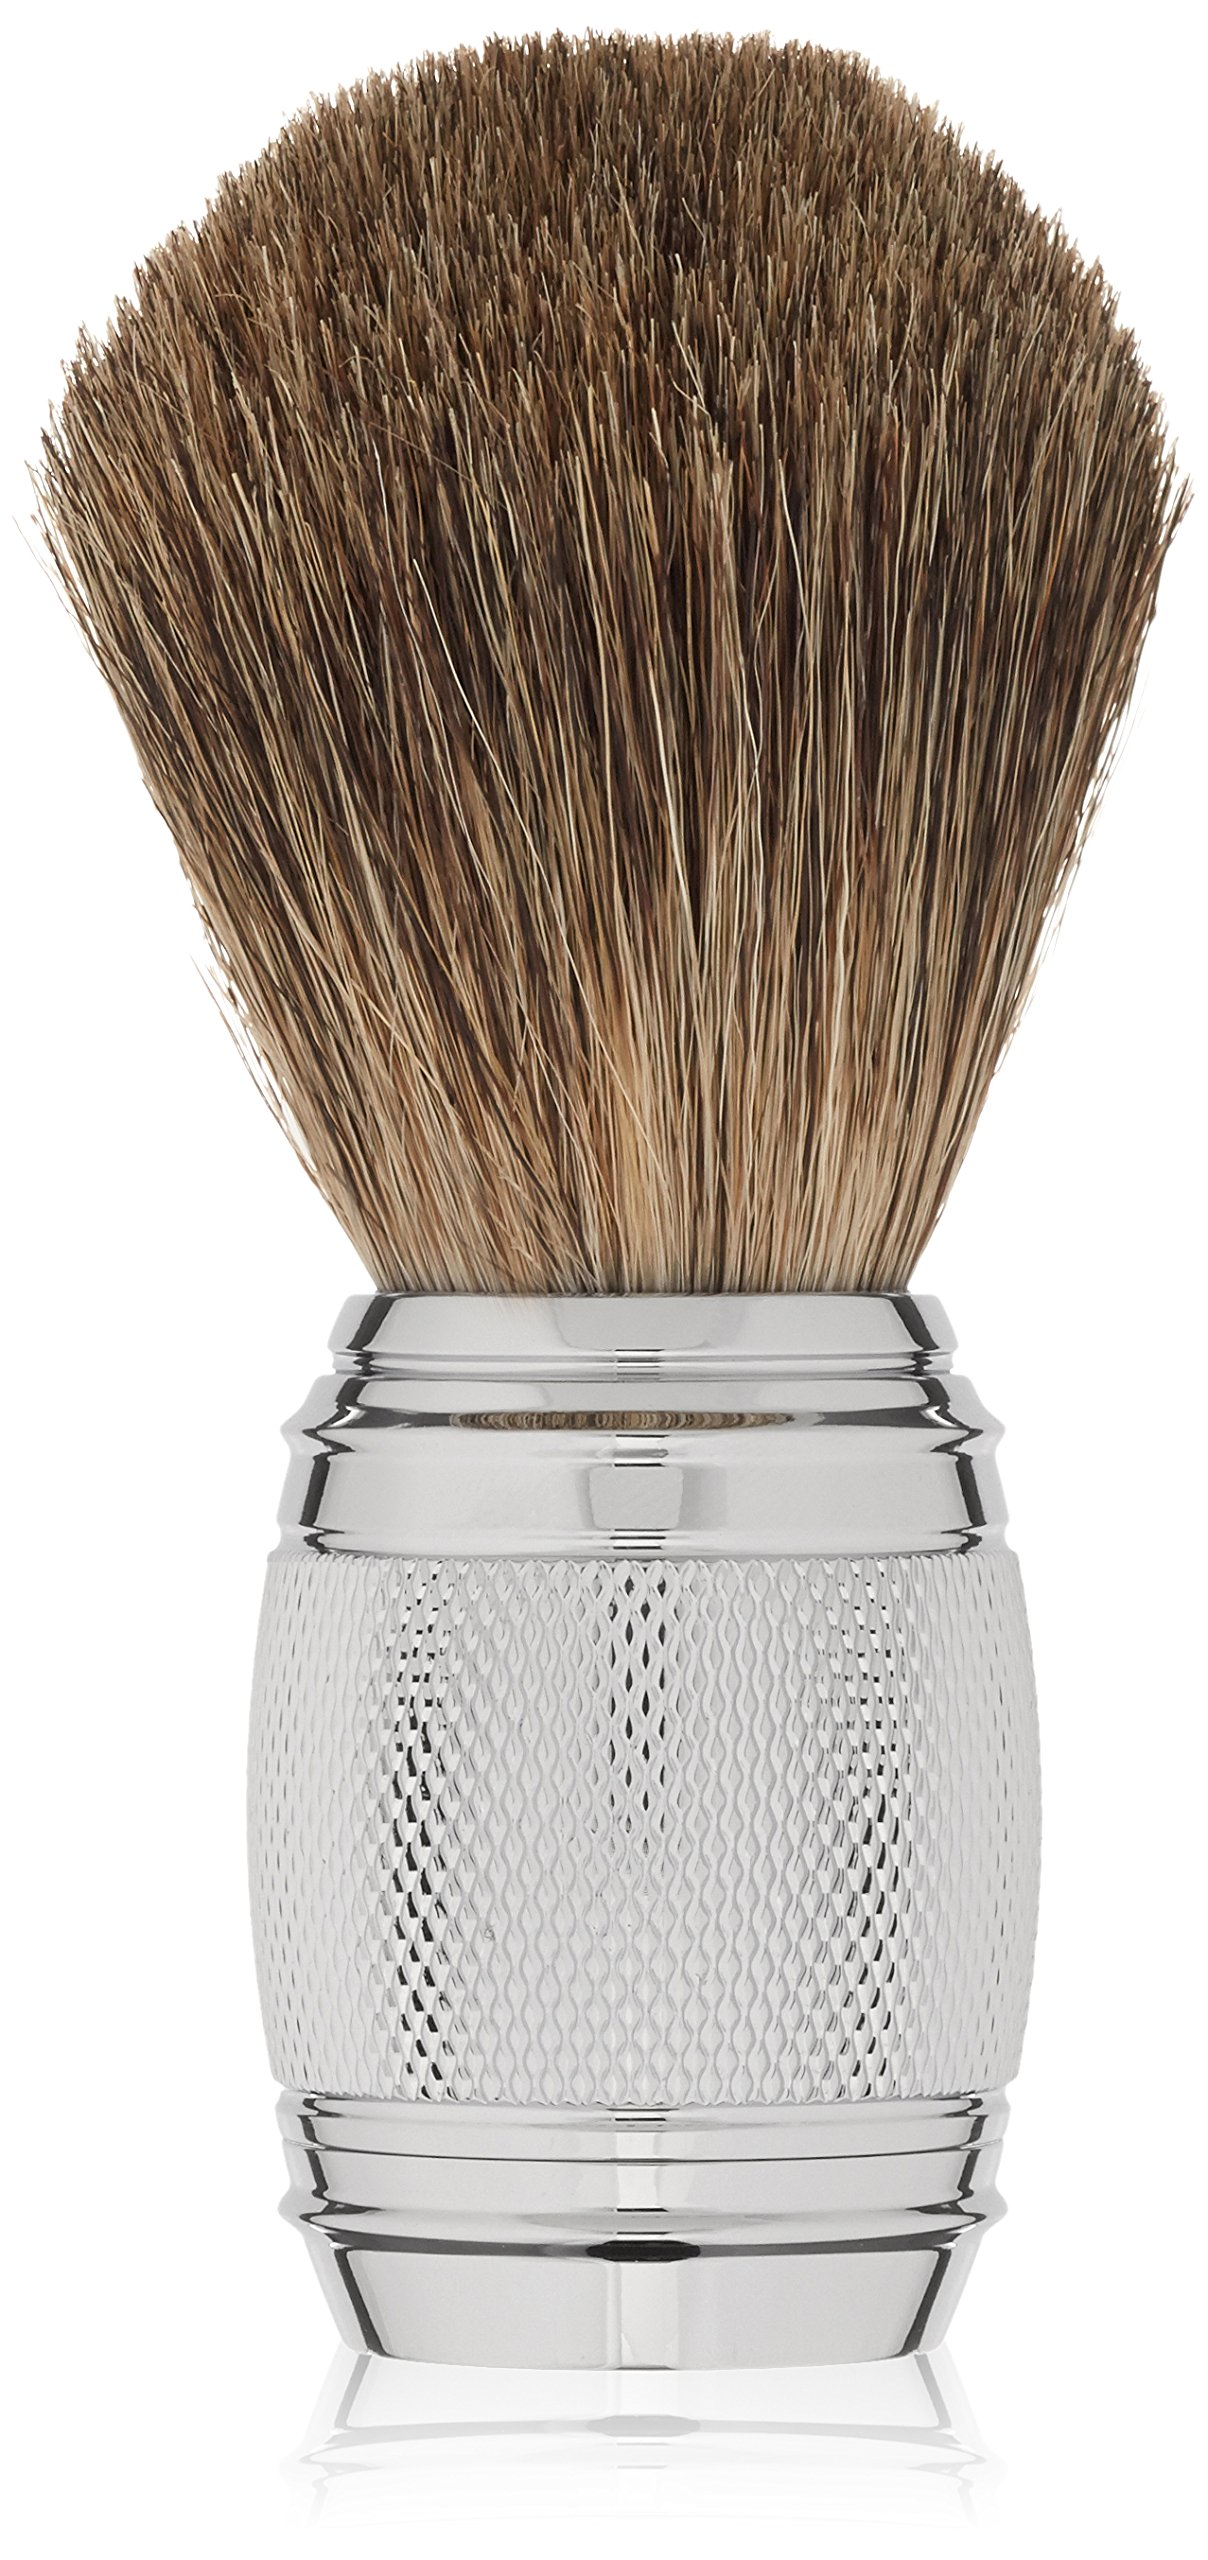 The Art of Shaving Fusion Chrome Collection, Pure Badger Brush, 0.76 lb.